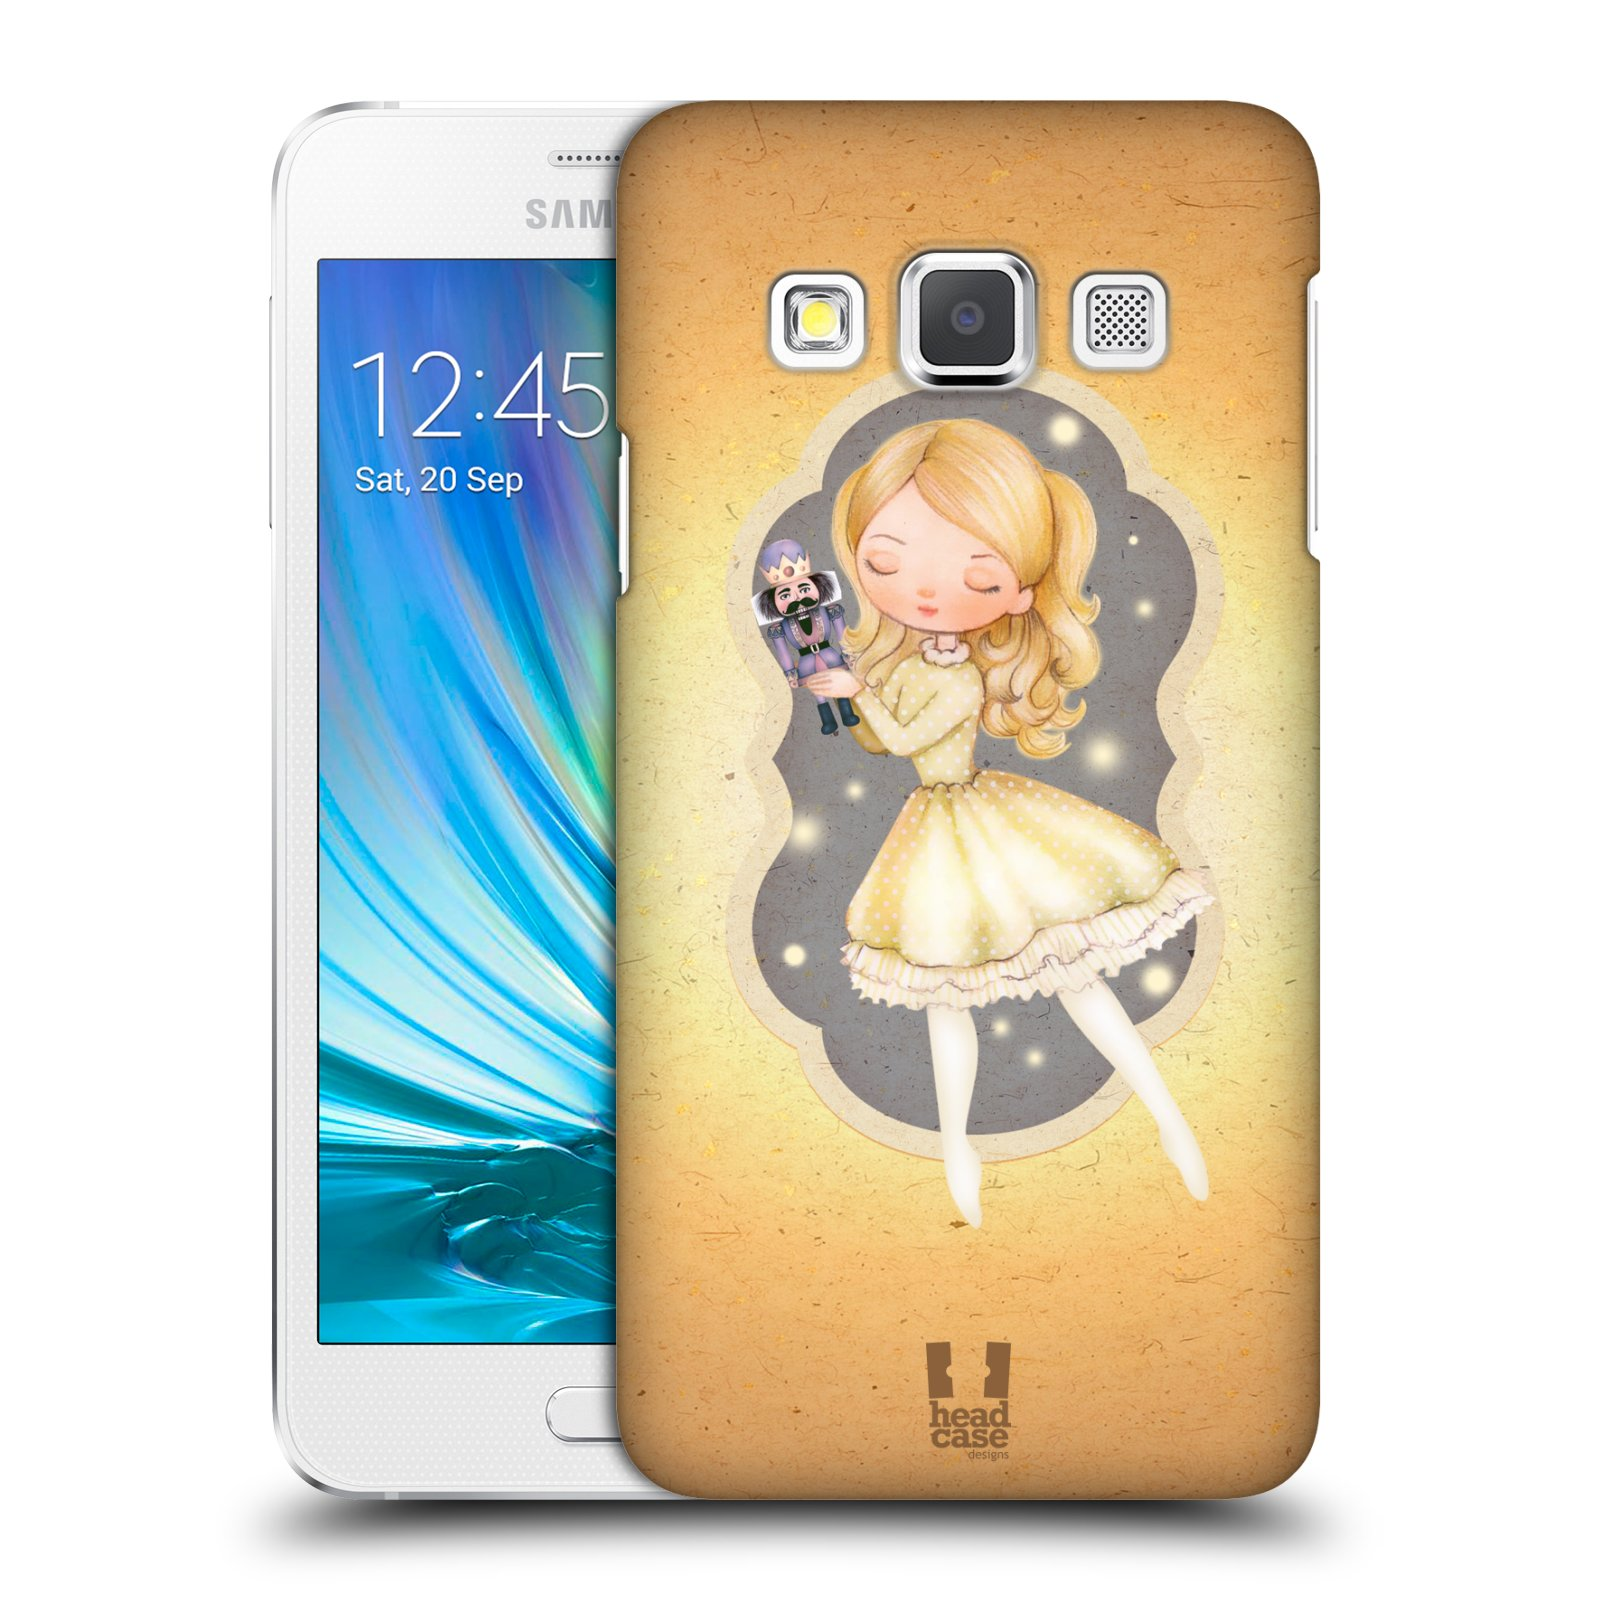 HEAD CASE DESIGNS THE NUTCRACKER HARD BACK CASE FOR SAMSUNG PHONES 1